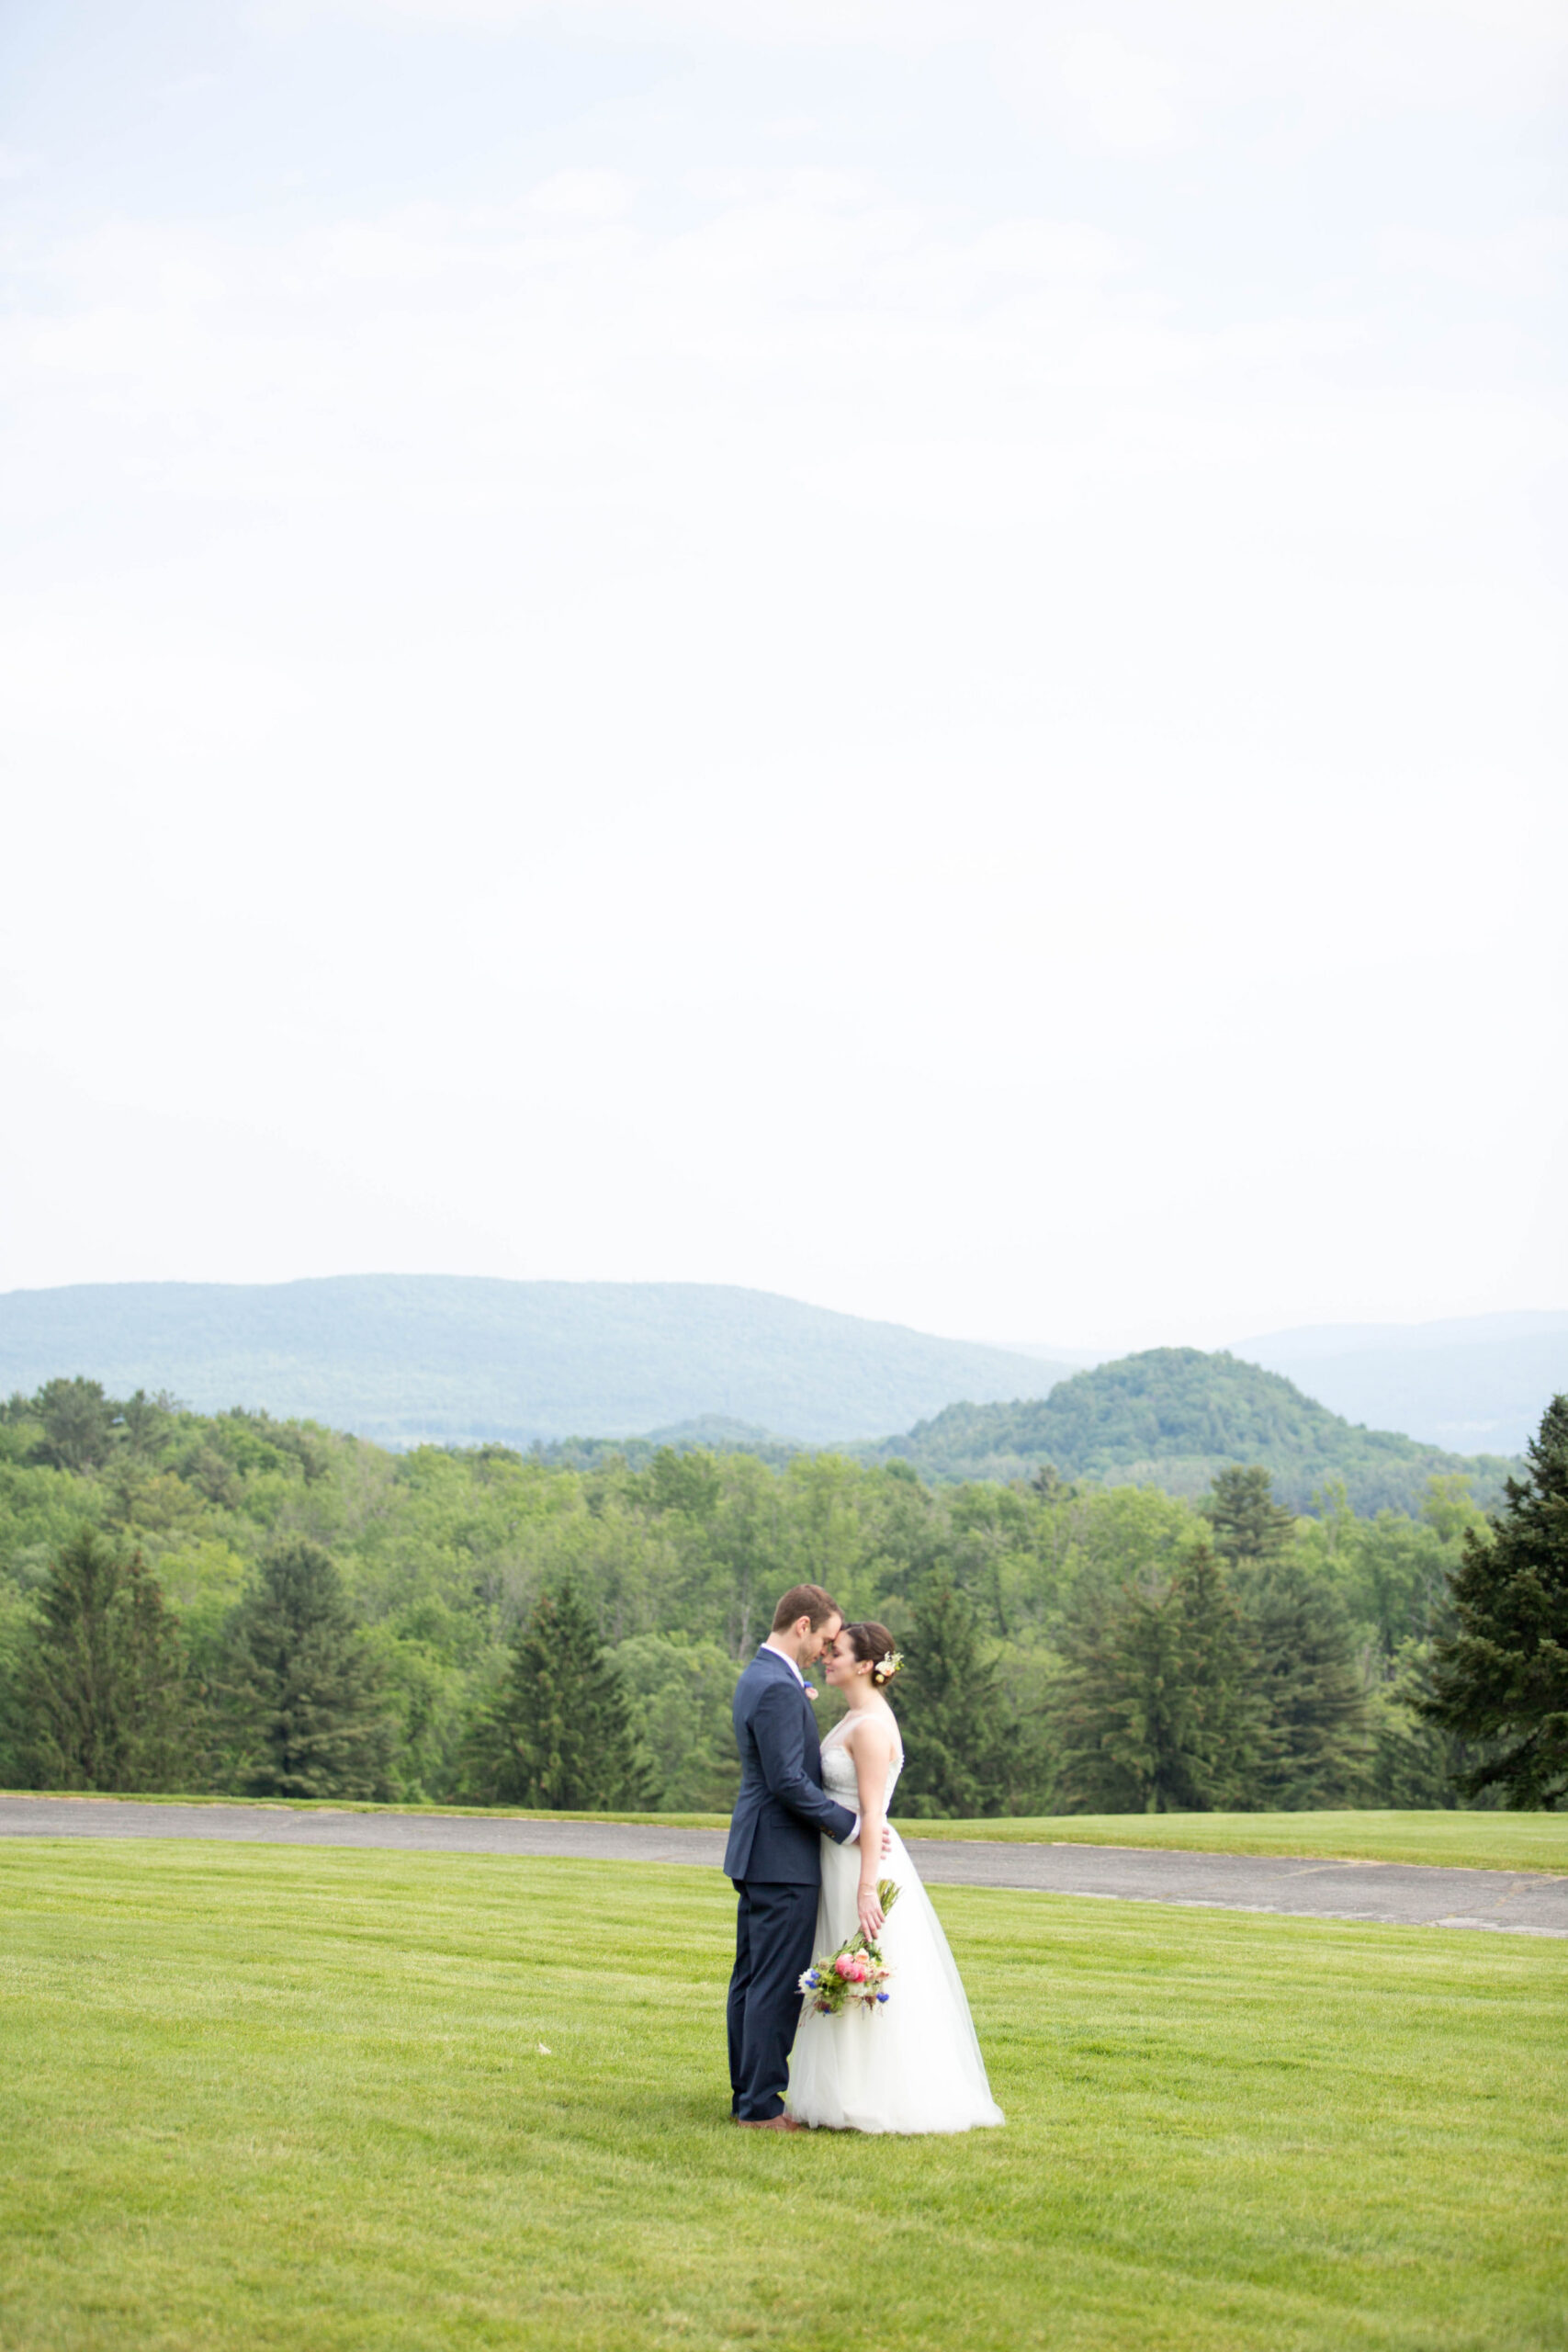 View More: http://alisonmariephotography.pass.us/emilystephenjune11th